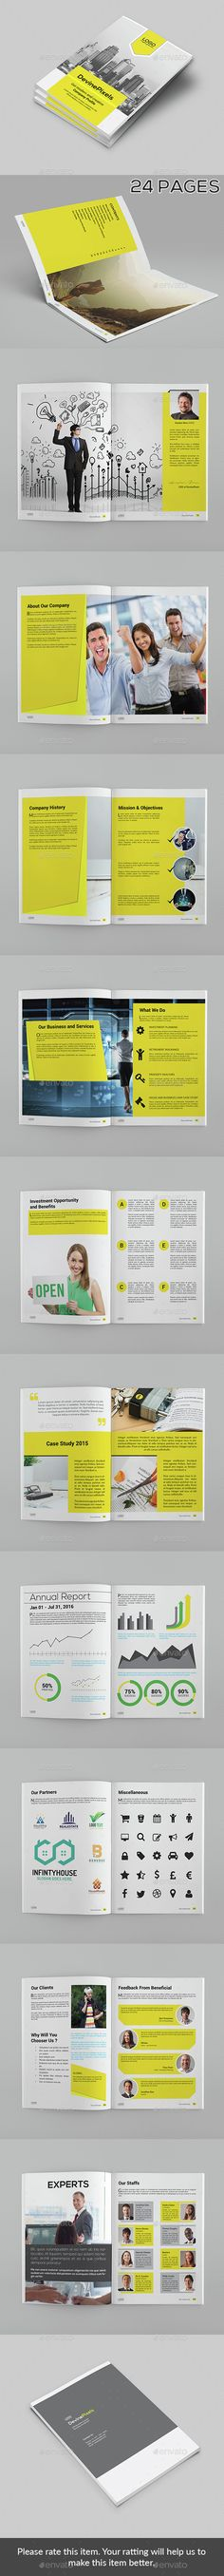 Business Proposal InDesign Template v4 More Stationery, Project - profile company template